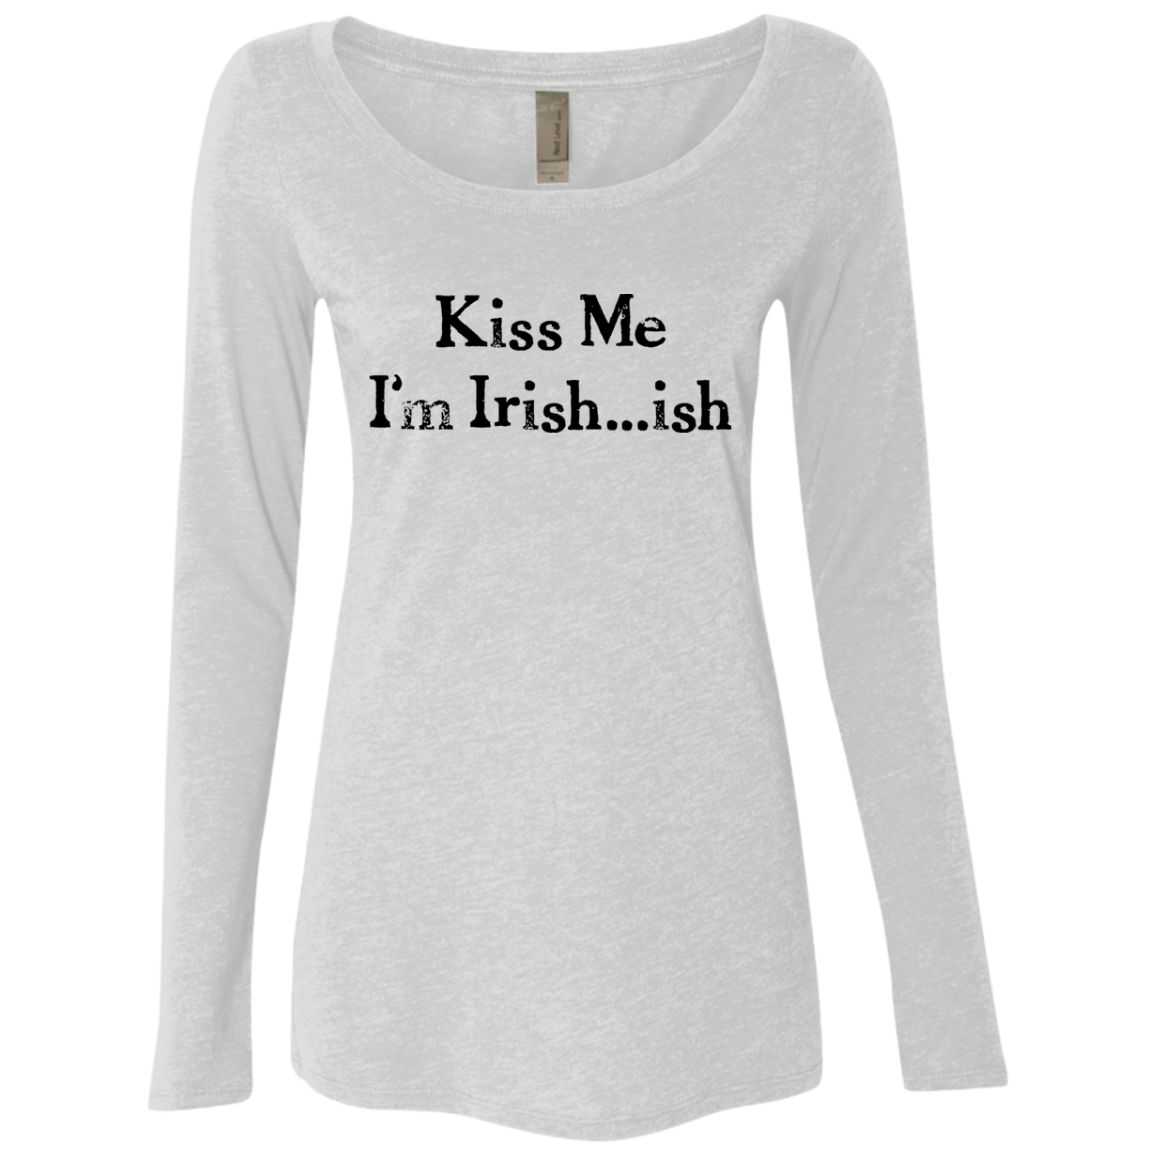 Kiss Me I'm Irish Women's Long Sleeve Tee